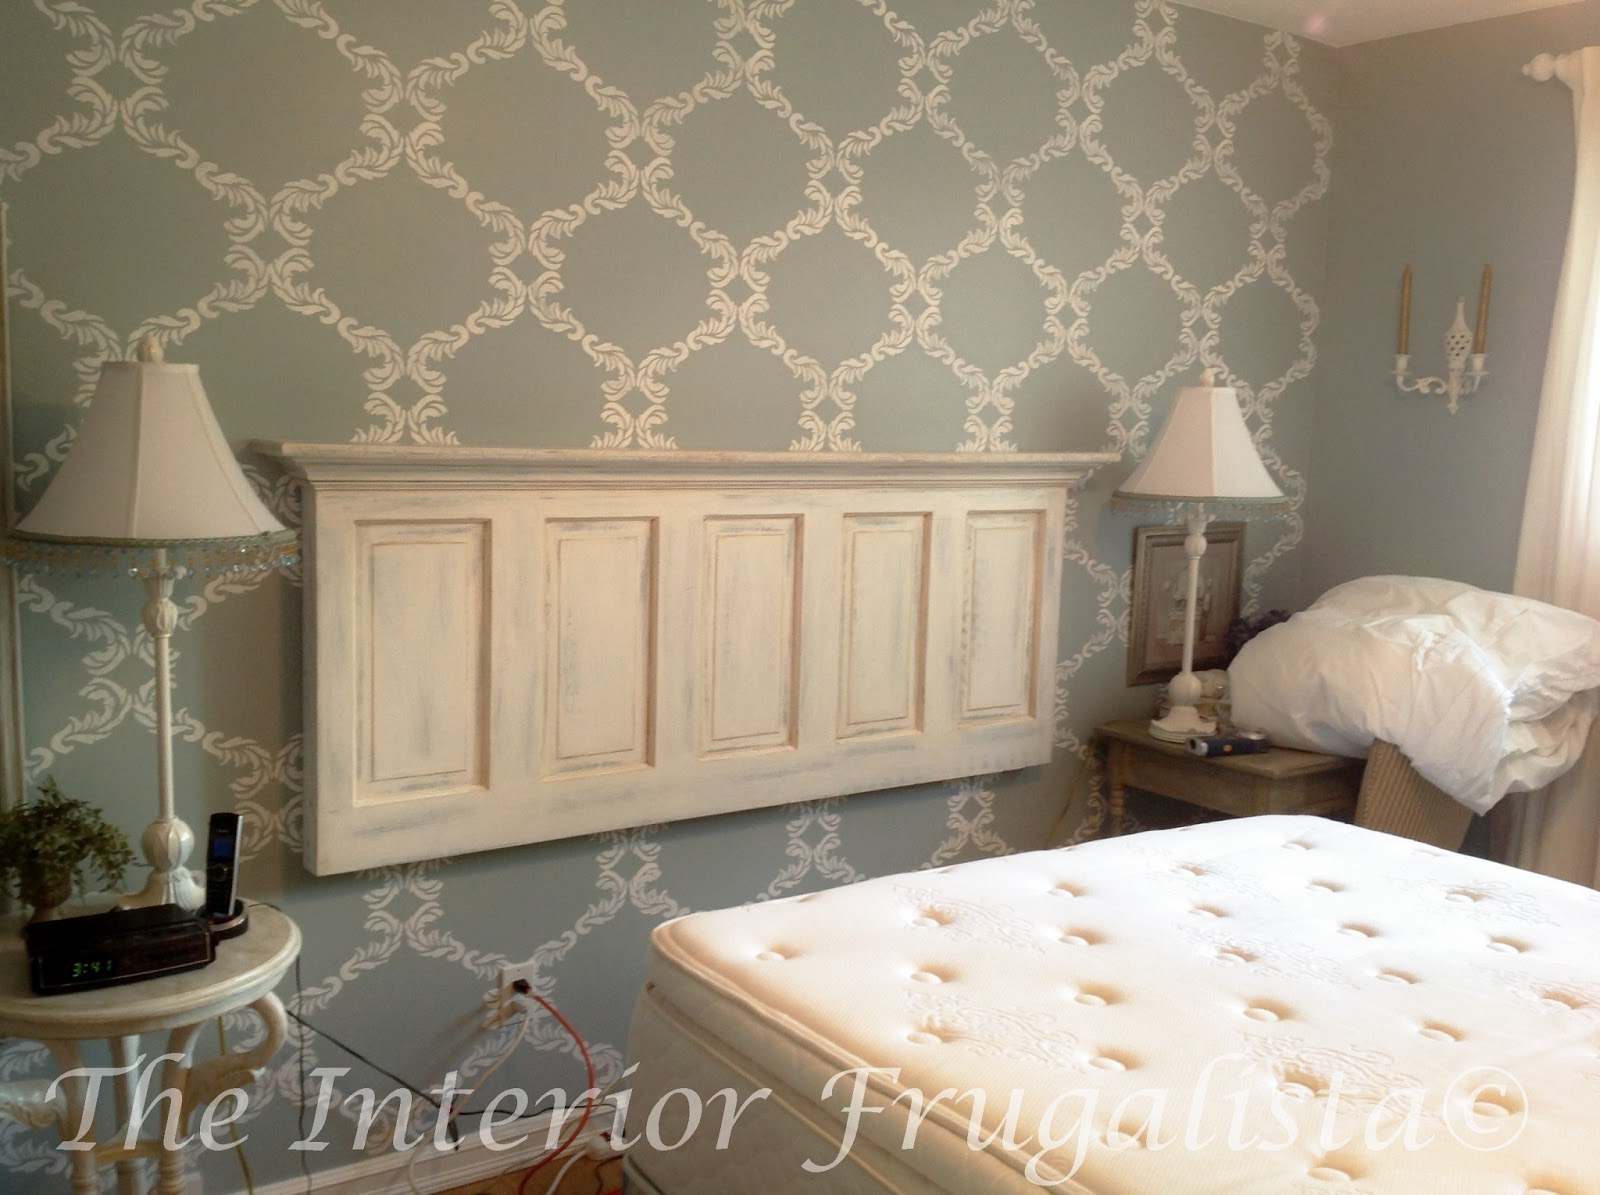 How To Turn An Old Door Into A Headboard The Interior